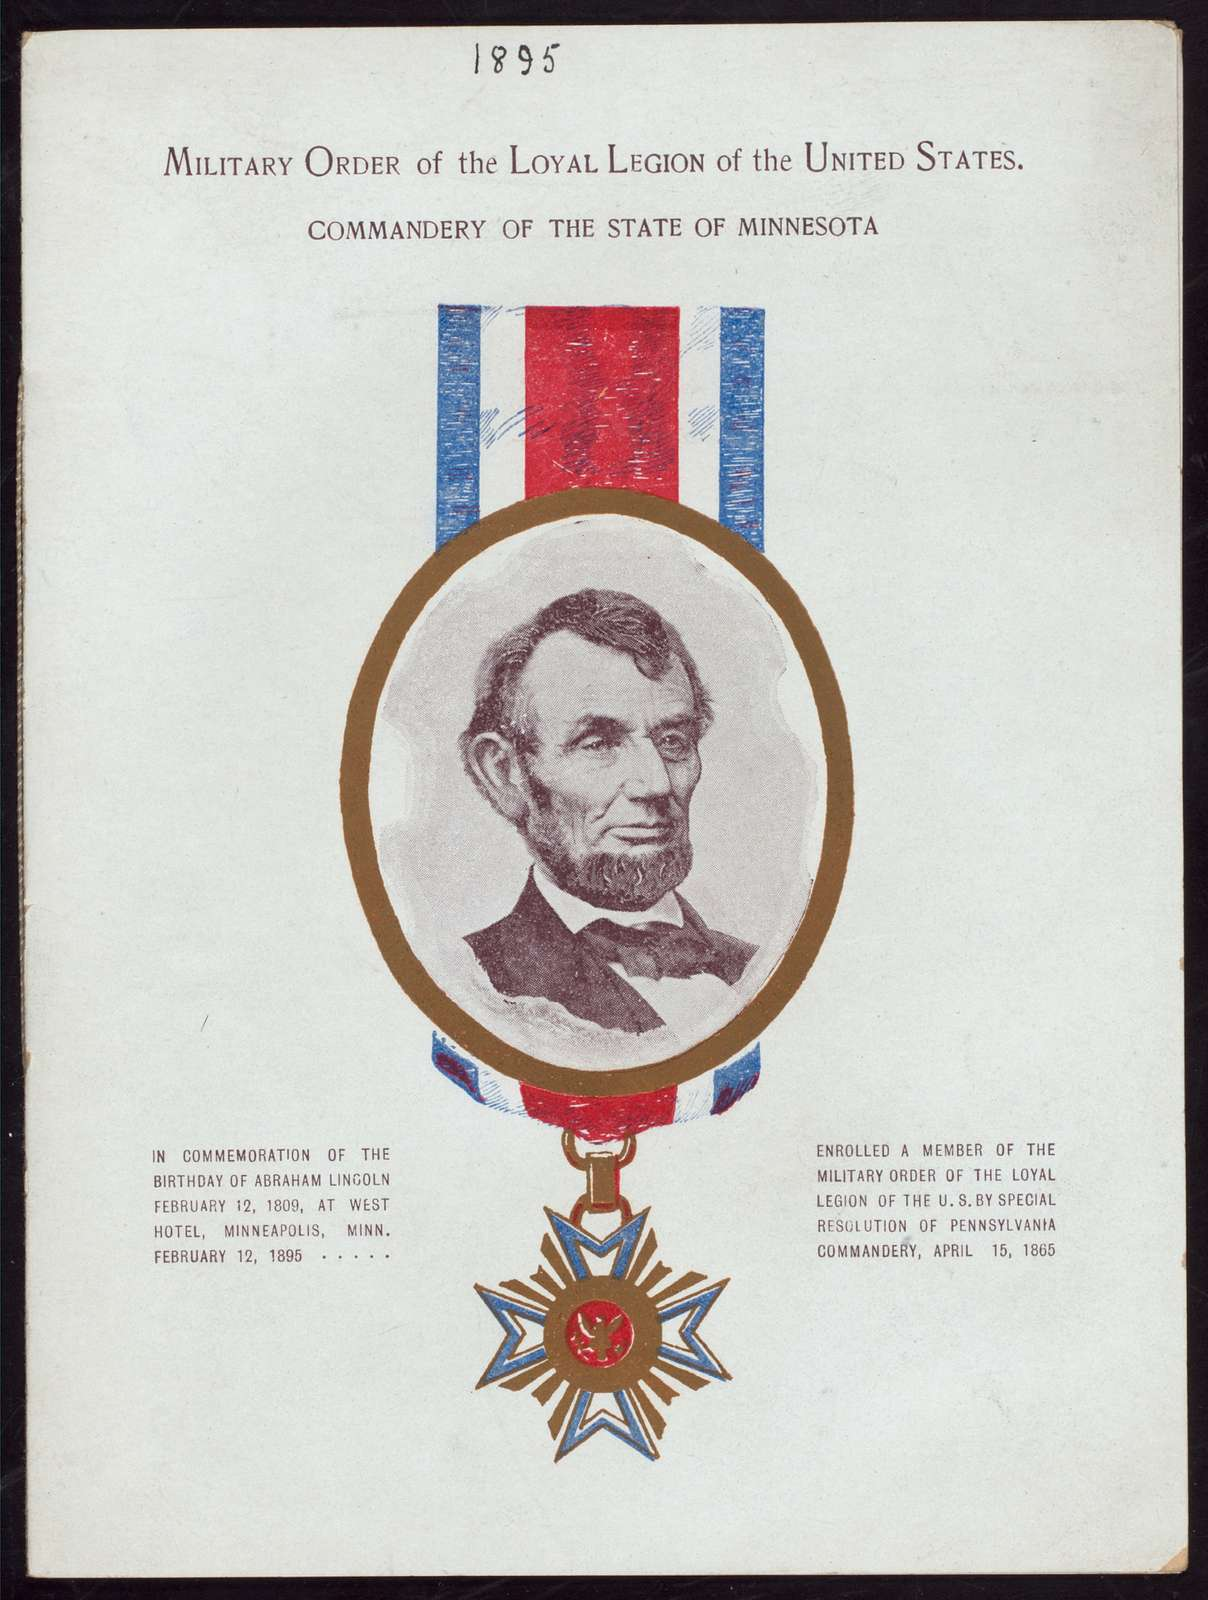 """LINCOLN'S BIRTHDAY DINNER [held by] MILITARY ORDER OF THE LOYAL LEGION OF THE U.S. COMMANDERY OF MINNESOTA [at] """"WEST HOTEL, MINNEAPOLIS, MN"""" (HOTEL;)"""